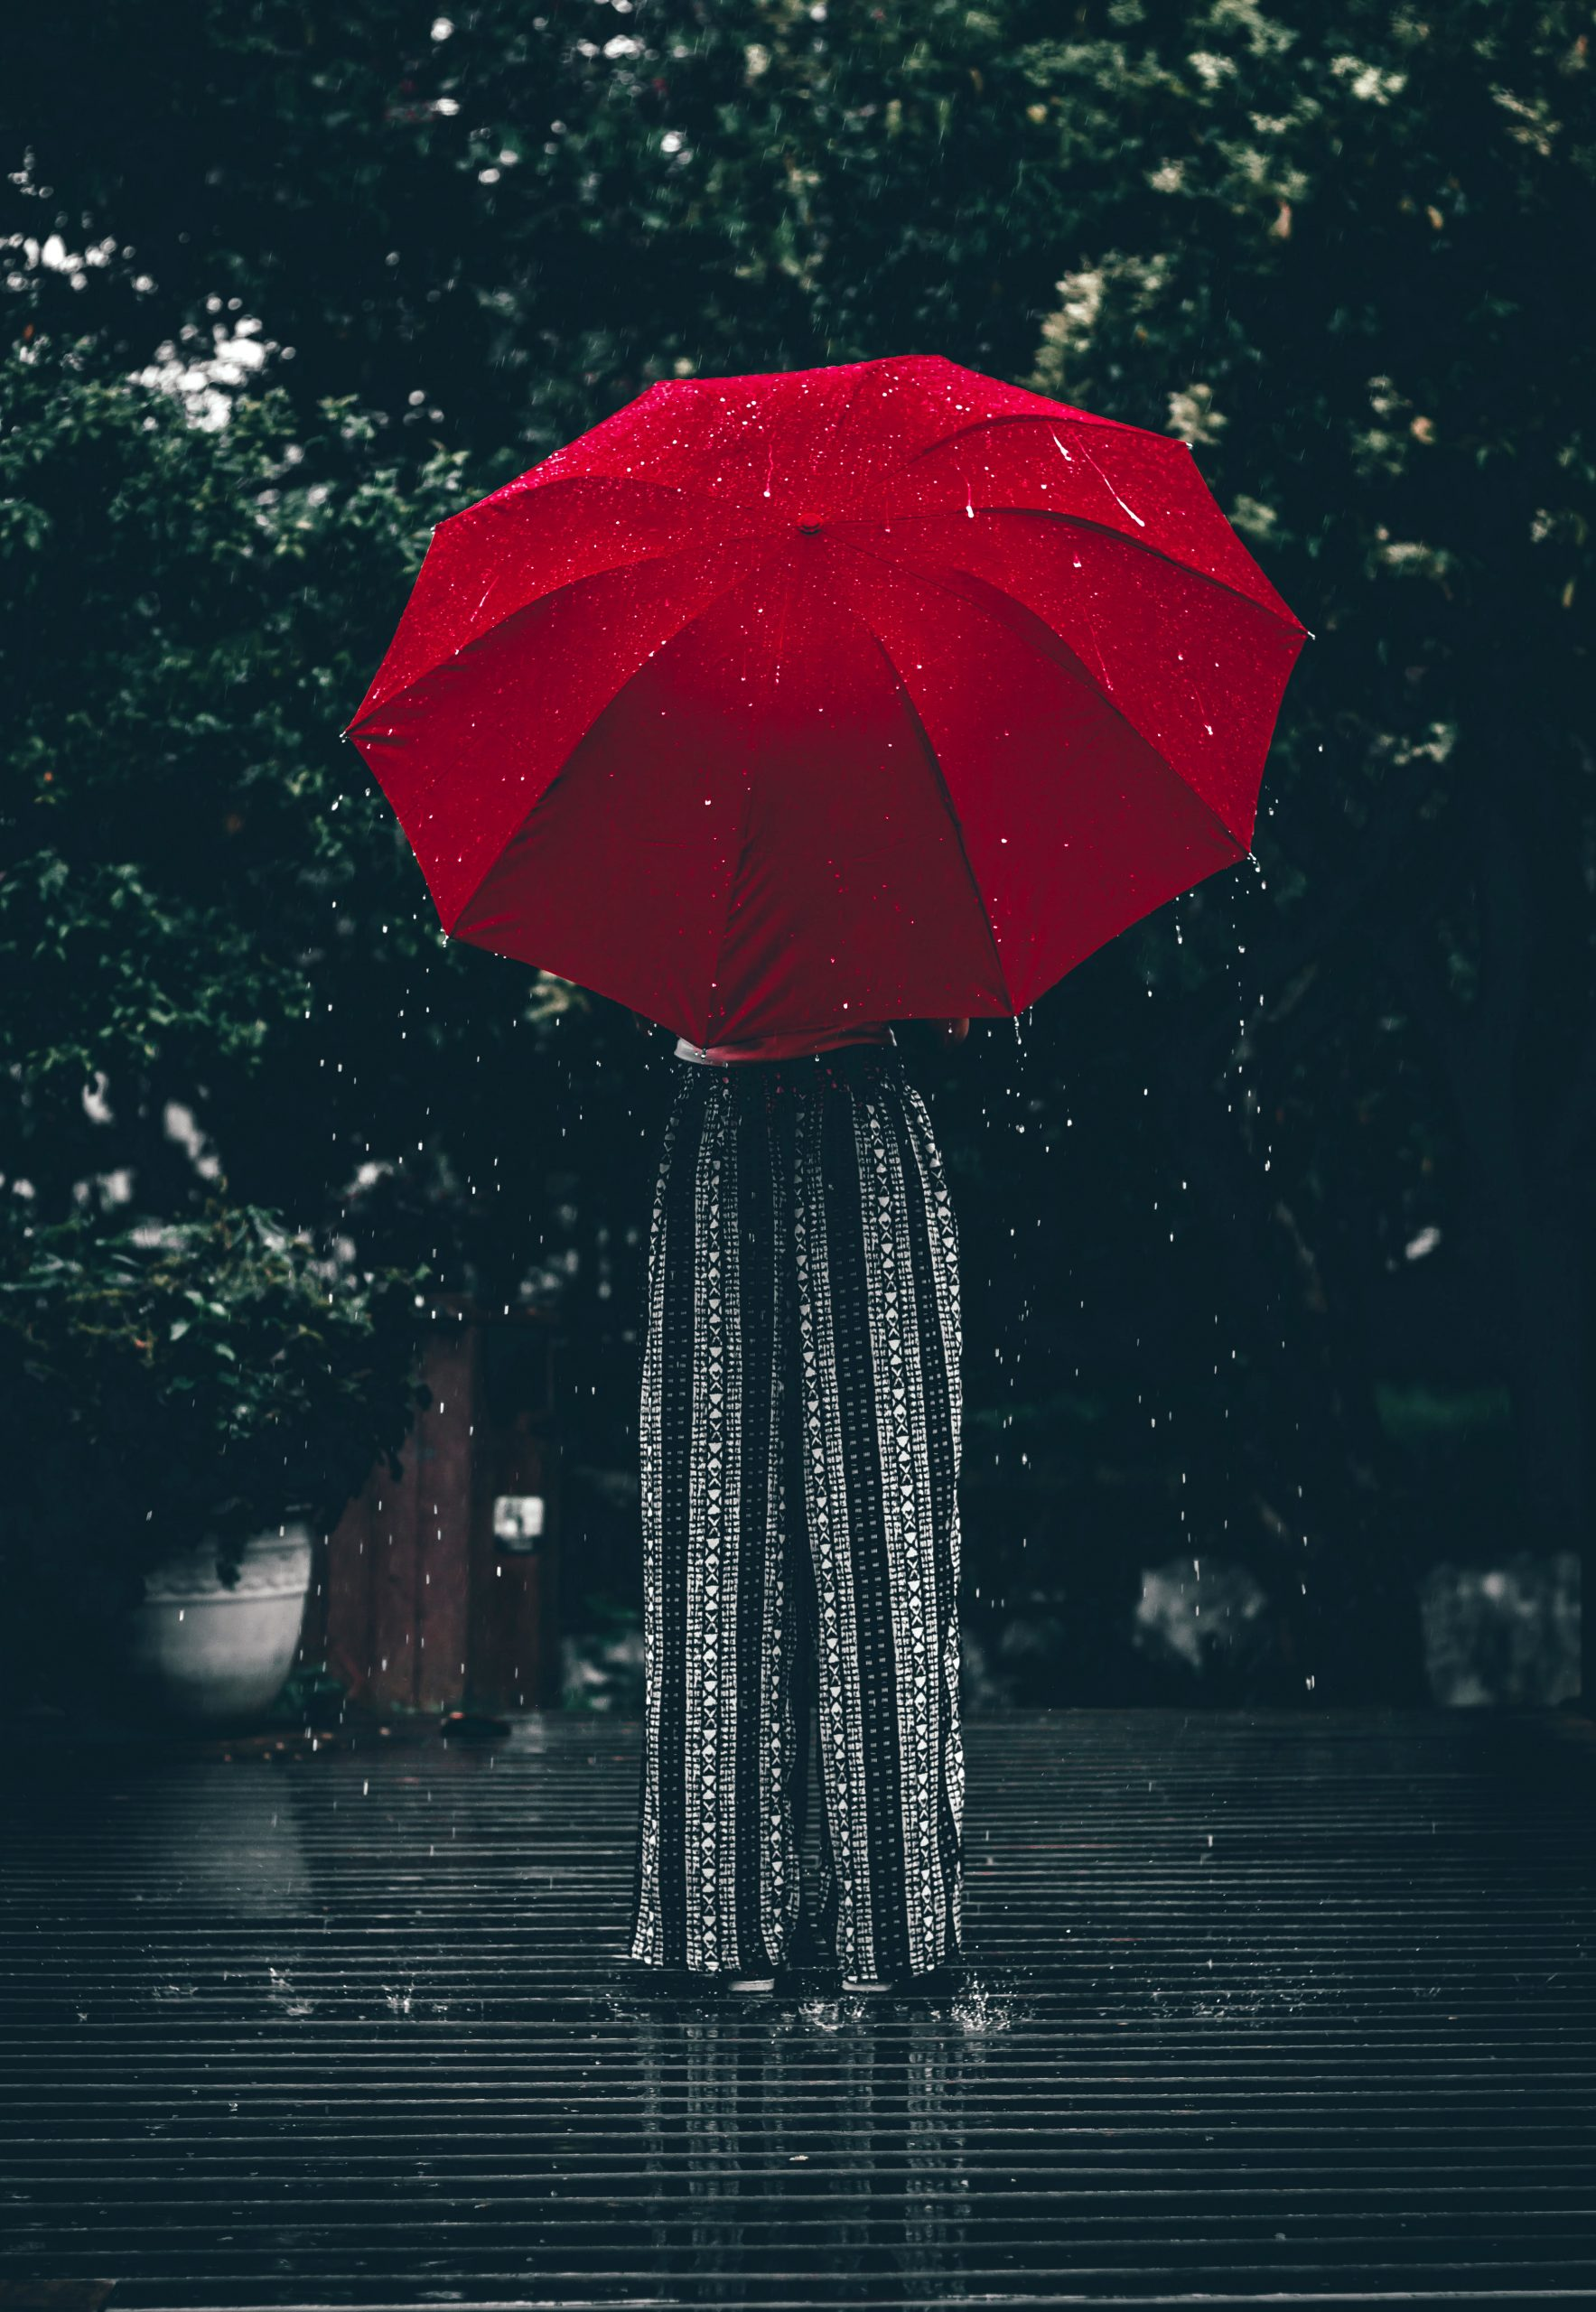 A woman holding a red umbrella.